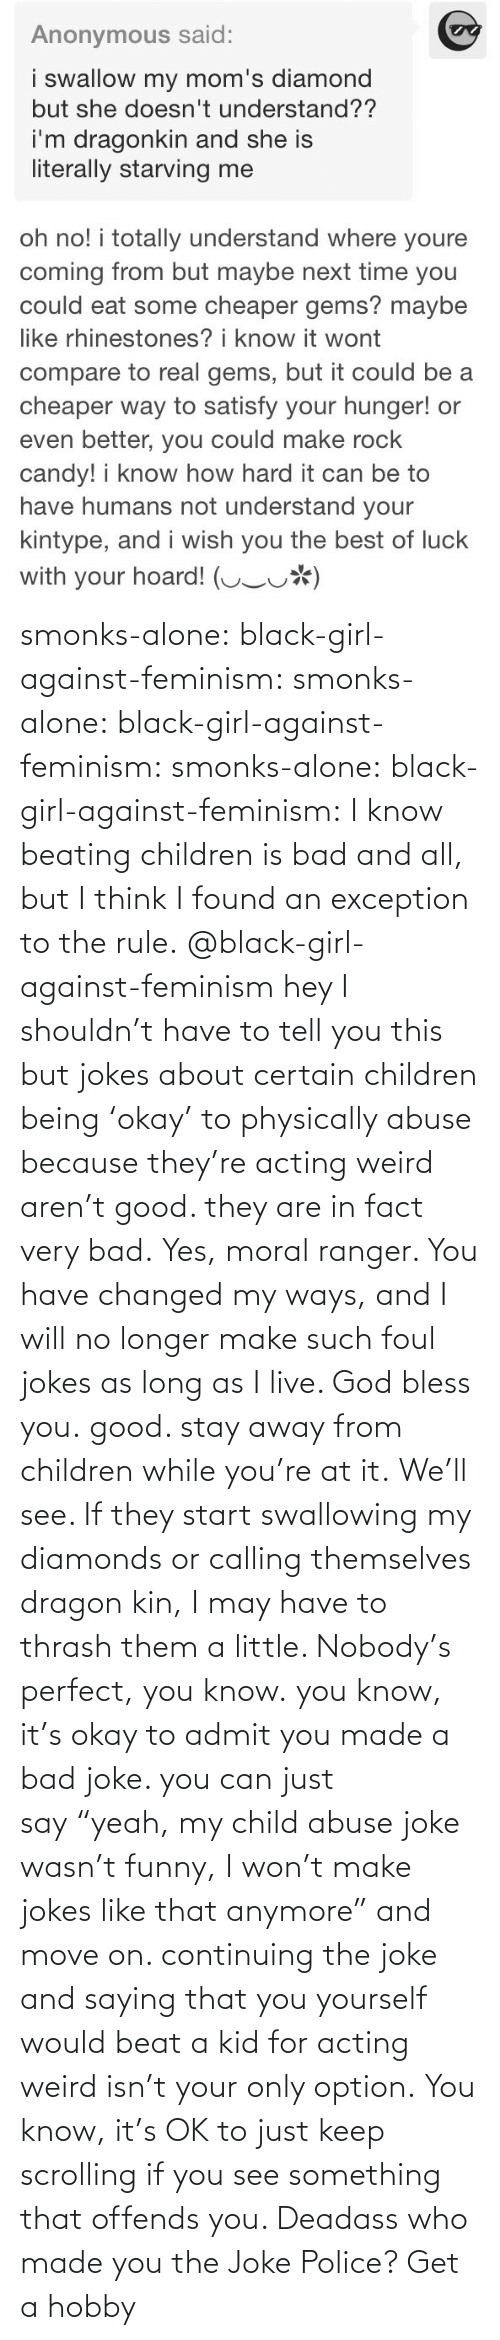 "beat: smonks-alone:  black-girl-against-feminism: smonks-alone:  black-girl-against-feminism:  smonks-alone:  black-girl-against-feminism: I know beating children is bad and all, but I think I found an exception to the rule. @black-girl-against-feminism hey I shouldn't have to tell you this but jokes about certain children being 'okay' to physically abuse because they're acting weird aren't good. they are in fact very bad.  Yes, moral ranger. You have changed my ways, and I will no longer make such foul jokes as long as I live. God bless you.  good. stay away from children while you're at it.  We'll see. If they start swallowing my diamonds or calling themselves dragon kin, I may have to thrash them a little. Nobody's perfect, you know.  you know, it's okay to admit you made a bad joke. you can just say ""yeah, my child abuse joke wasn't funny, I won't make jokes like that anymore"" and move on. continuing the joke and saying that you yourself would beat a kid for acting weird isn't your only option.   You know, it's OK to just keep scrolling if you see something that offends you. Deadass who made you the Joke Police? Get a hobby"